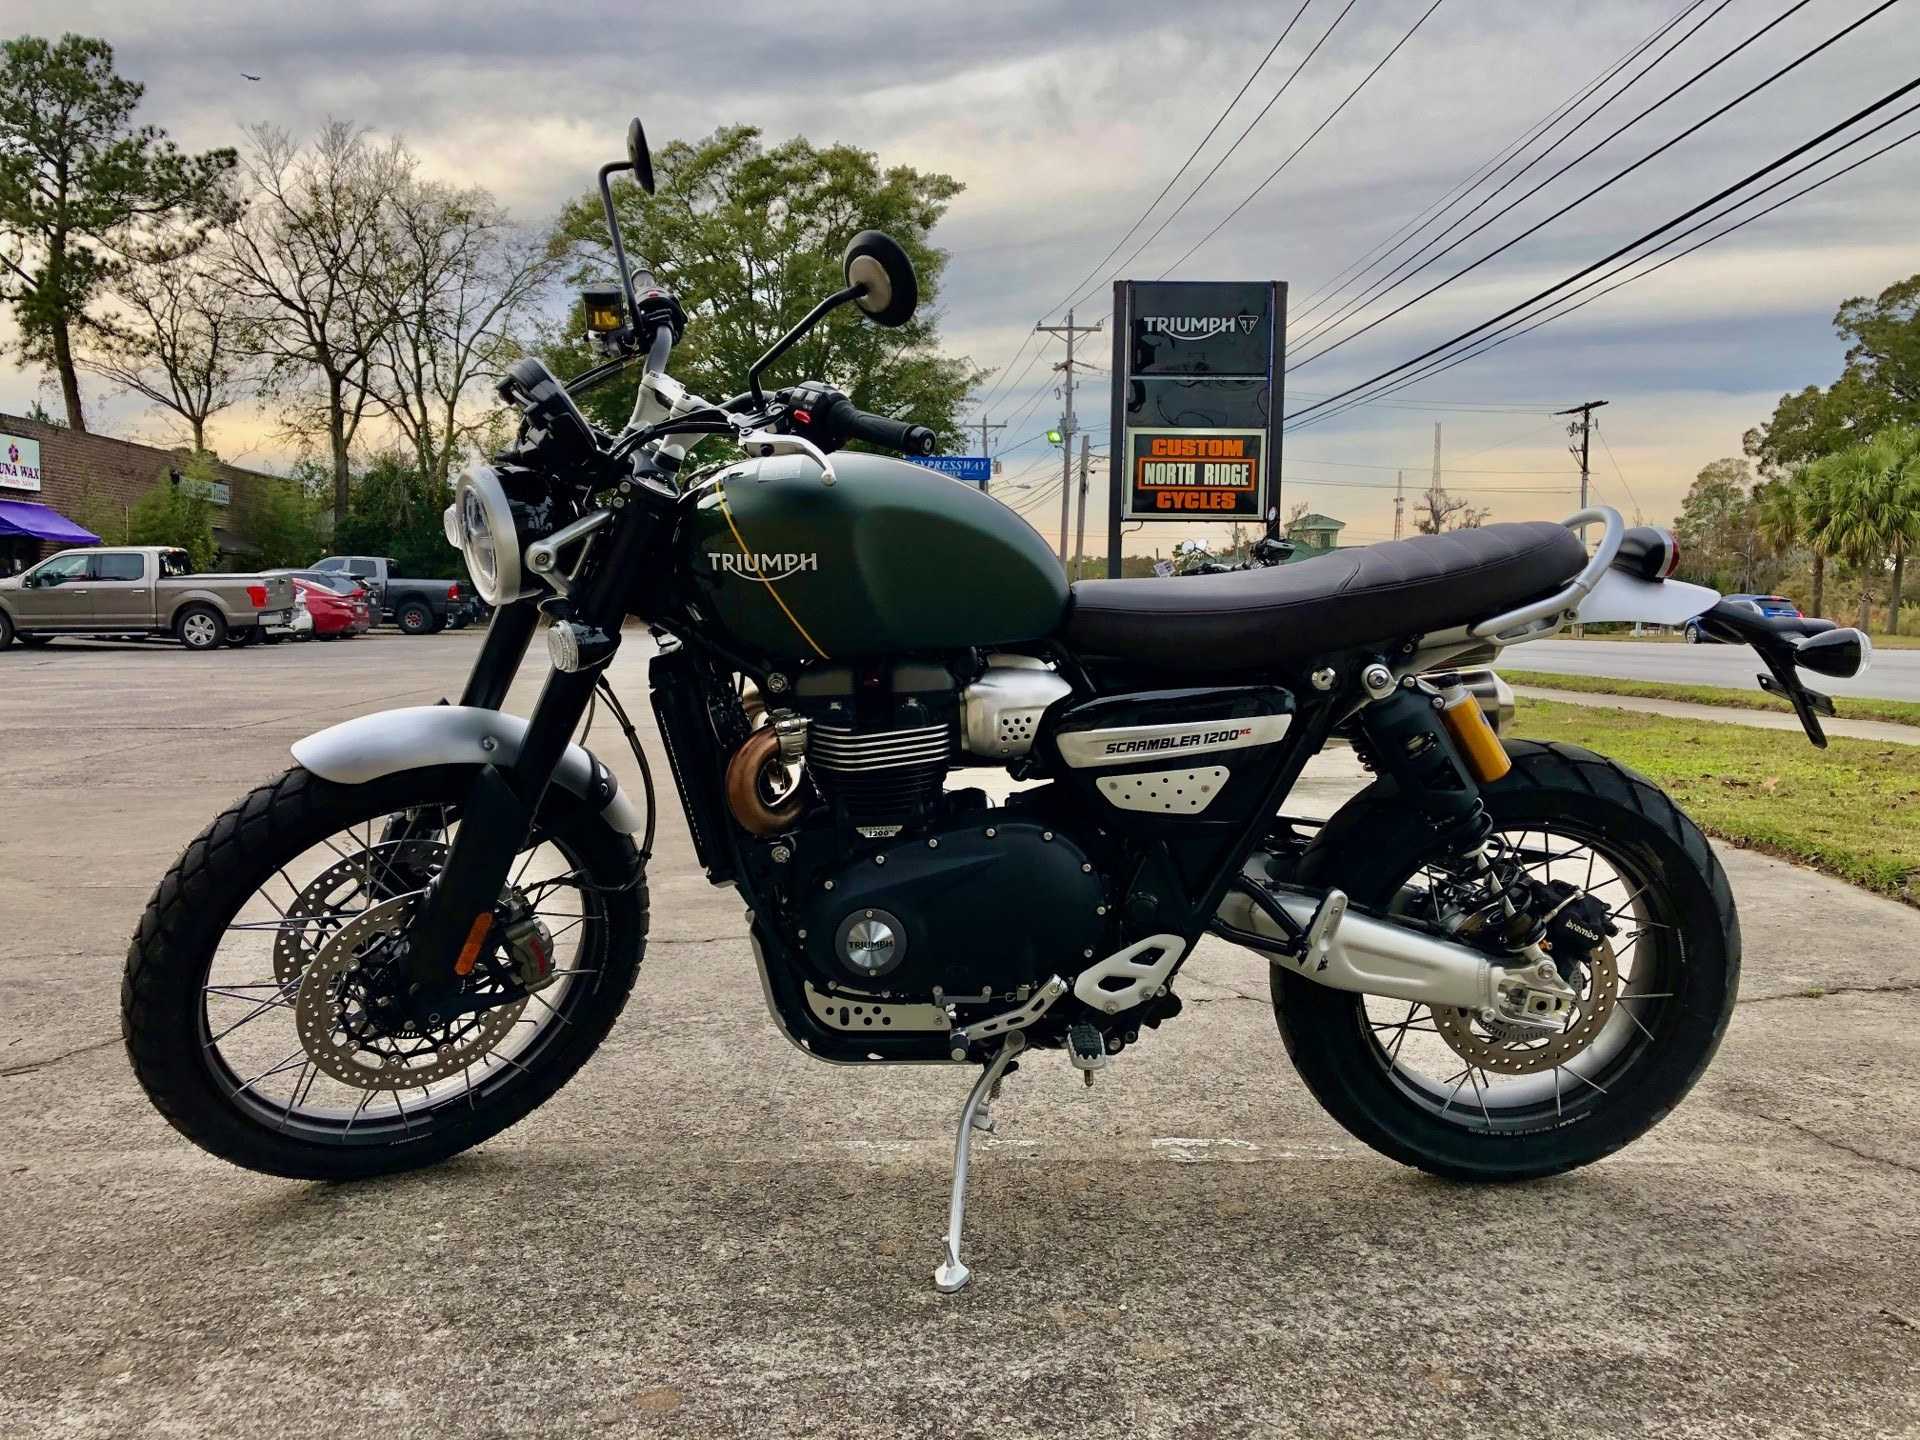 2020 Triumph Scrambler 1200 XC in Charleston, South Carolina - Photo 5